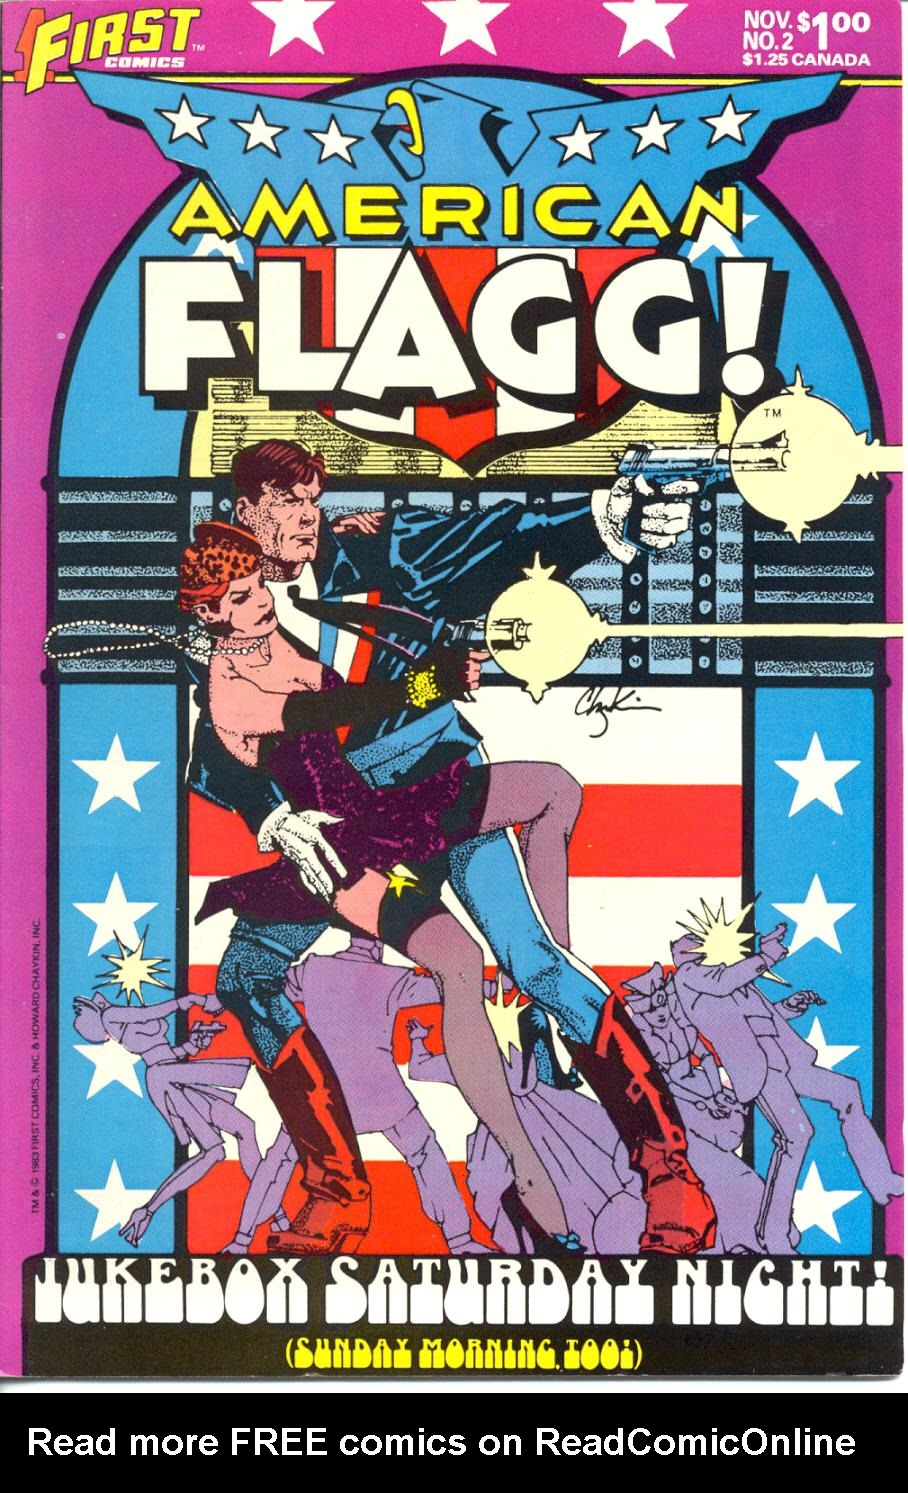 Read online American Flagg! comic -  Issue #2 - 1